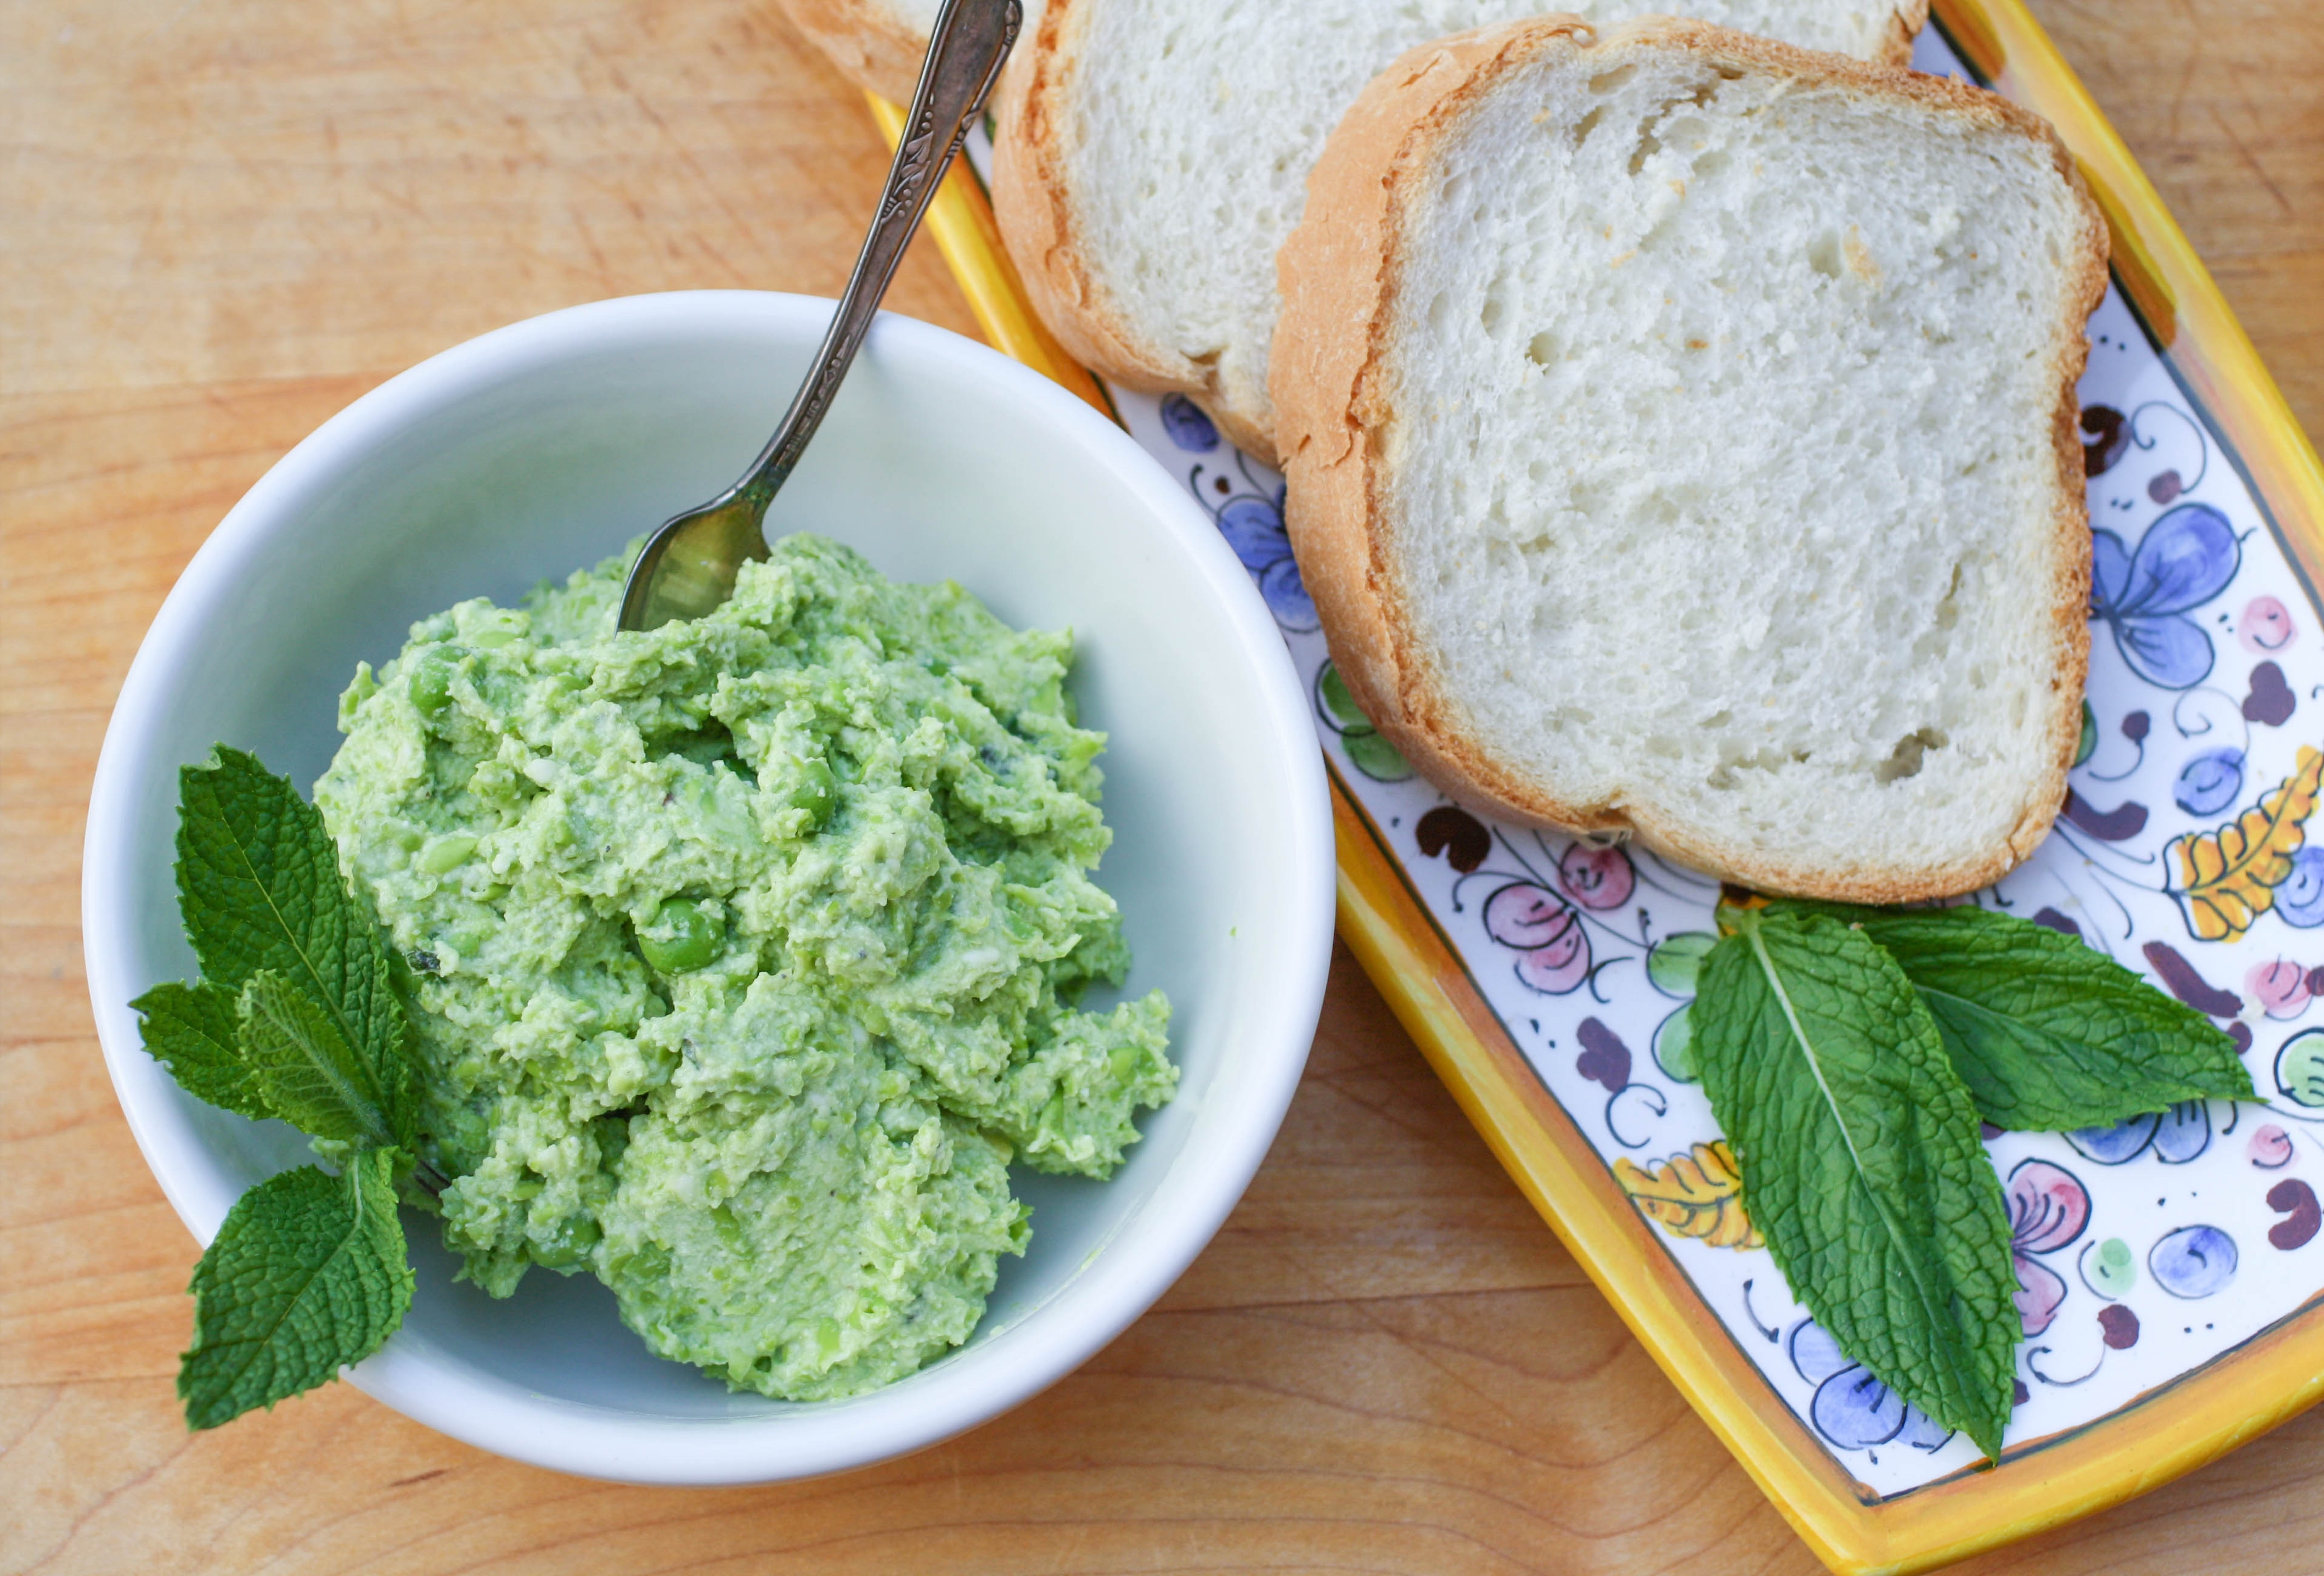 Pea and Ricotta Spread is a springtime favorite dish to share with friends gathered. You'll love the flavor of this Pea and Ricotta Spread.